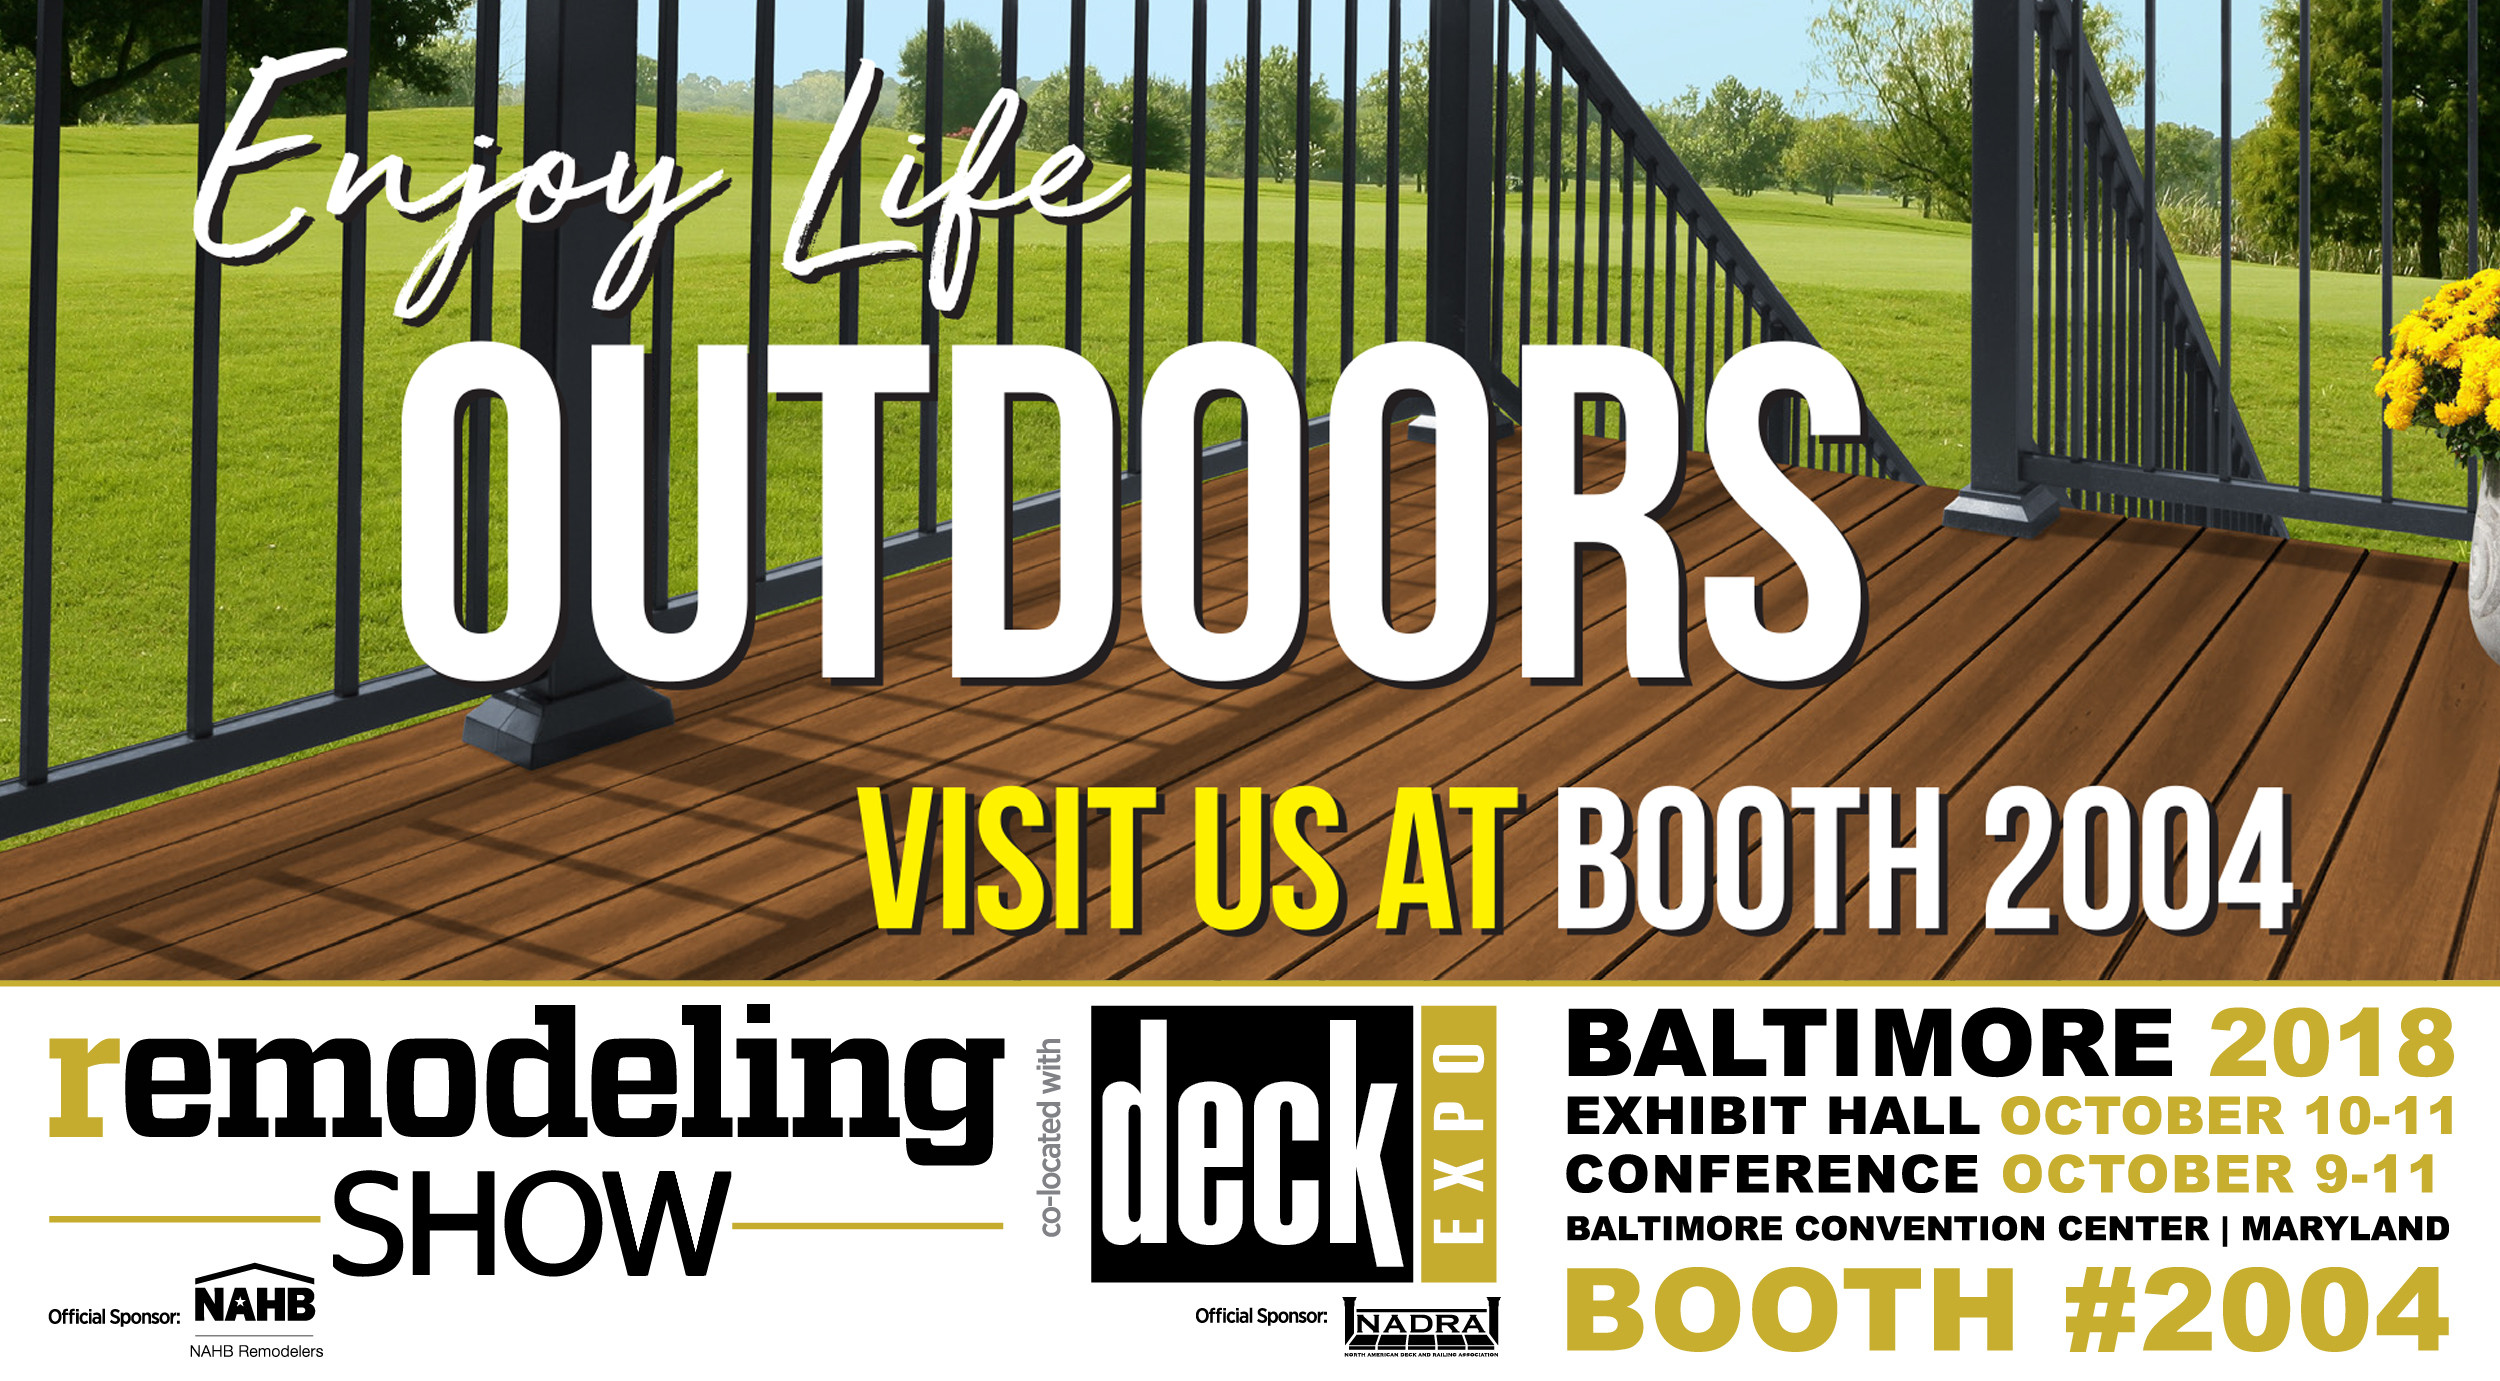 hardwood flooring installation checklist of remodeling show deck expo 2018 october 10 11 green bay decking throughout view larger image